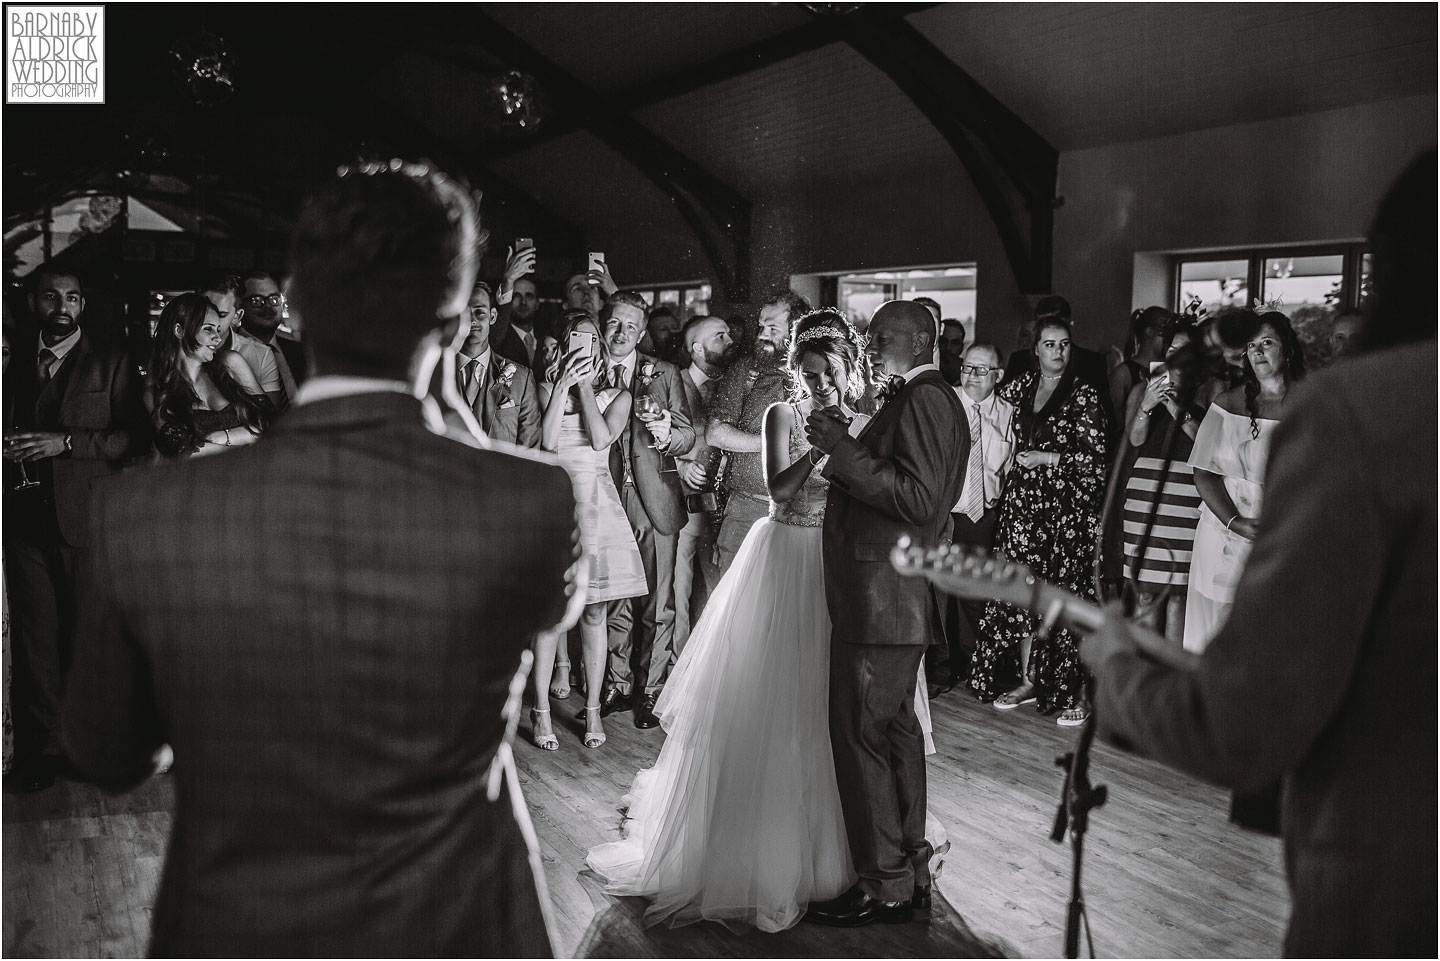 A groom sings while his wife dances at Yorkshire Wedding Barns, Amazing Yorkshire Wedding Photos, Best Yorkshire Wedding Photos 2018